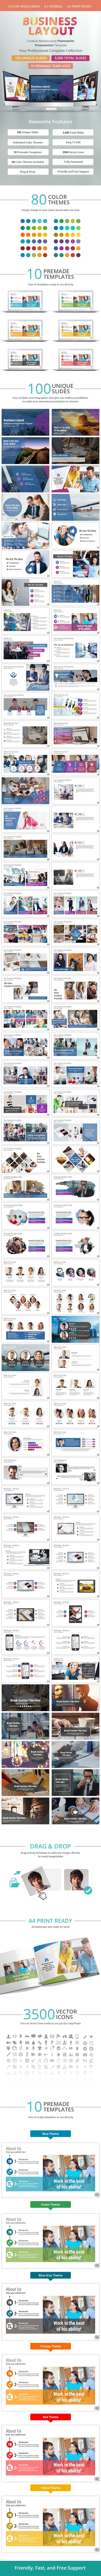 Business layout powerpoint presentation template business business layout powerpoint presentation template business powerpoint templates toneelgroepblik Choice Image